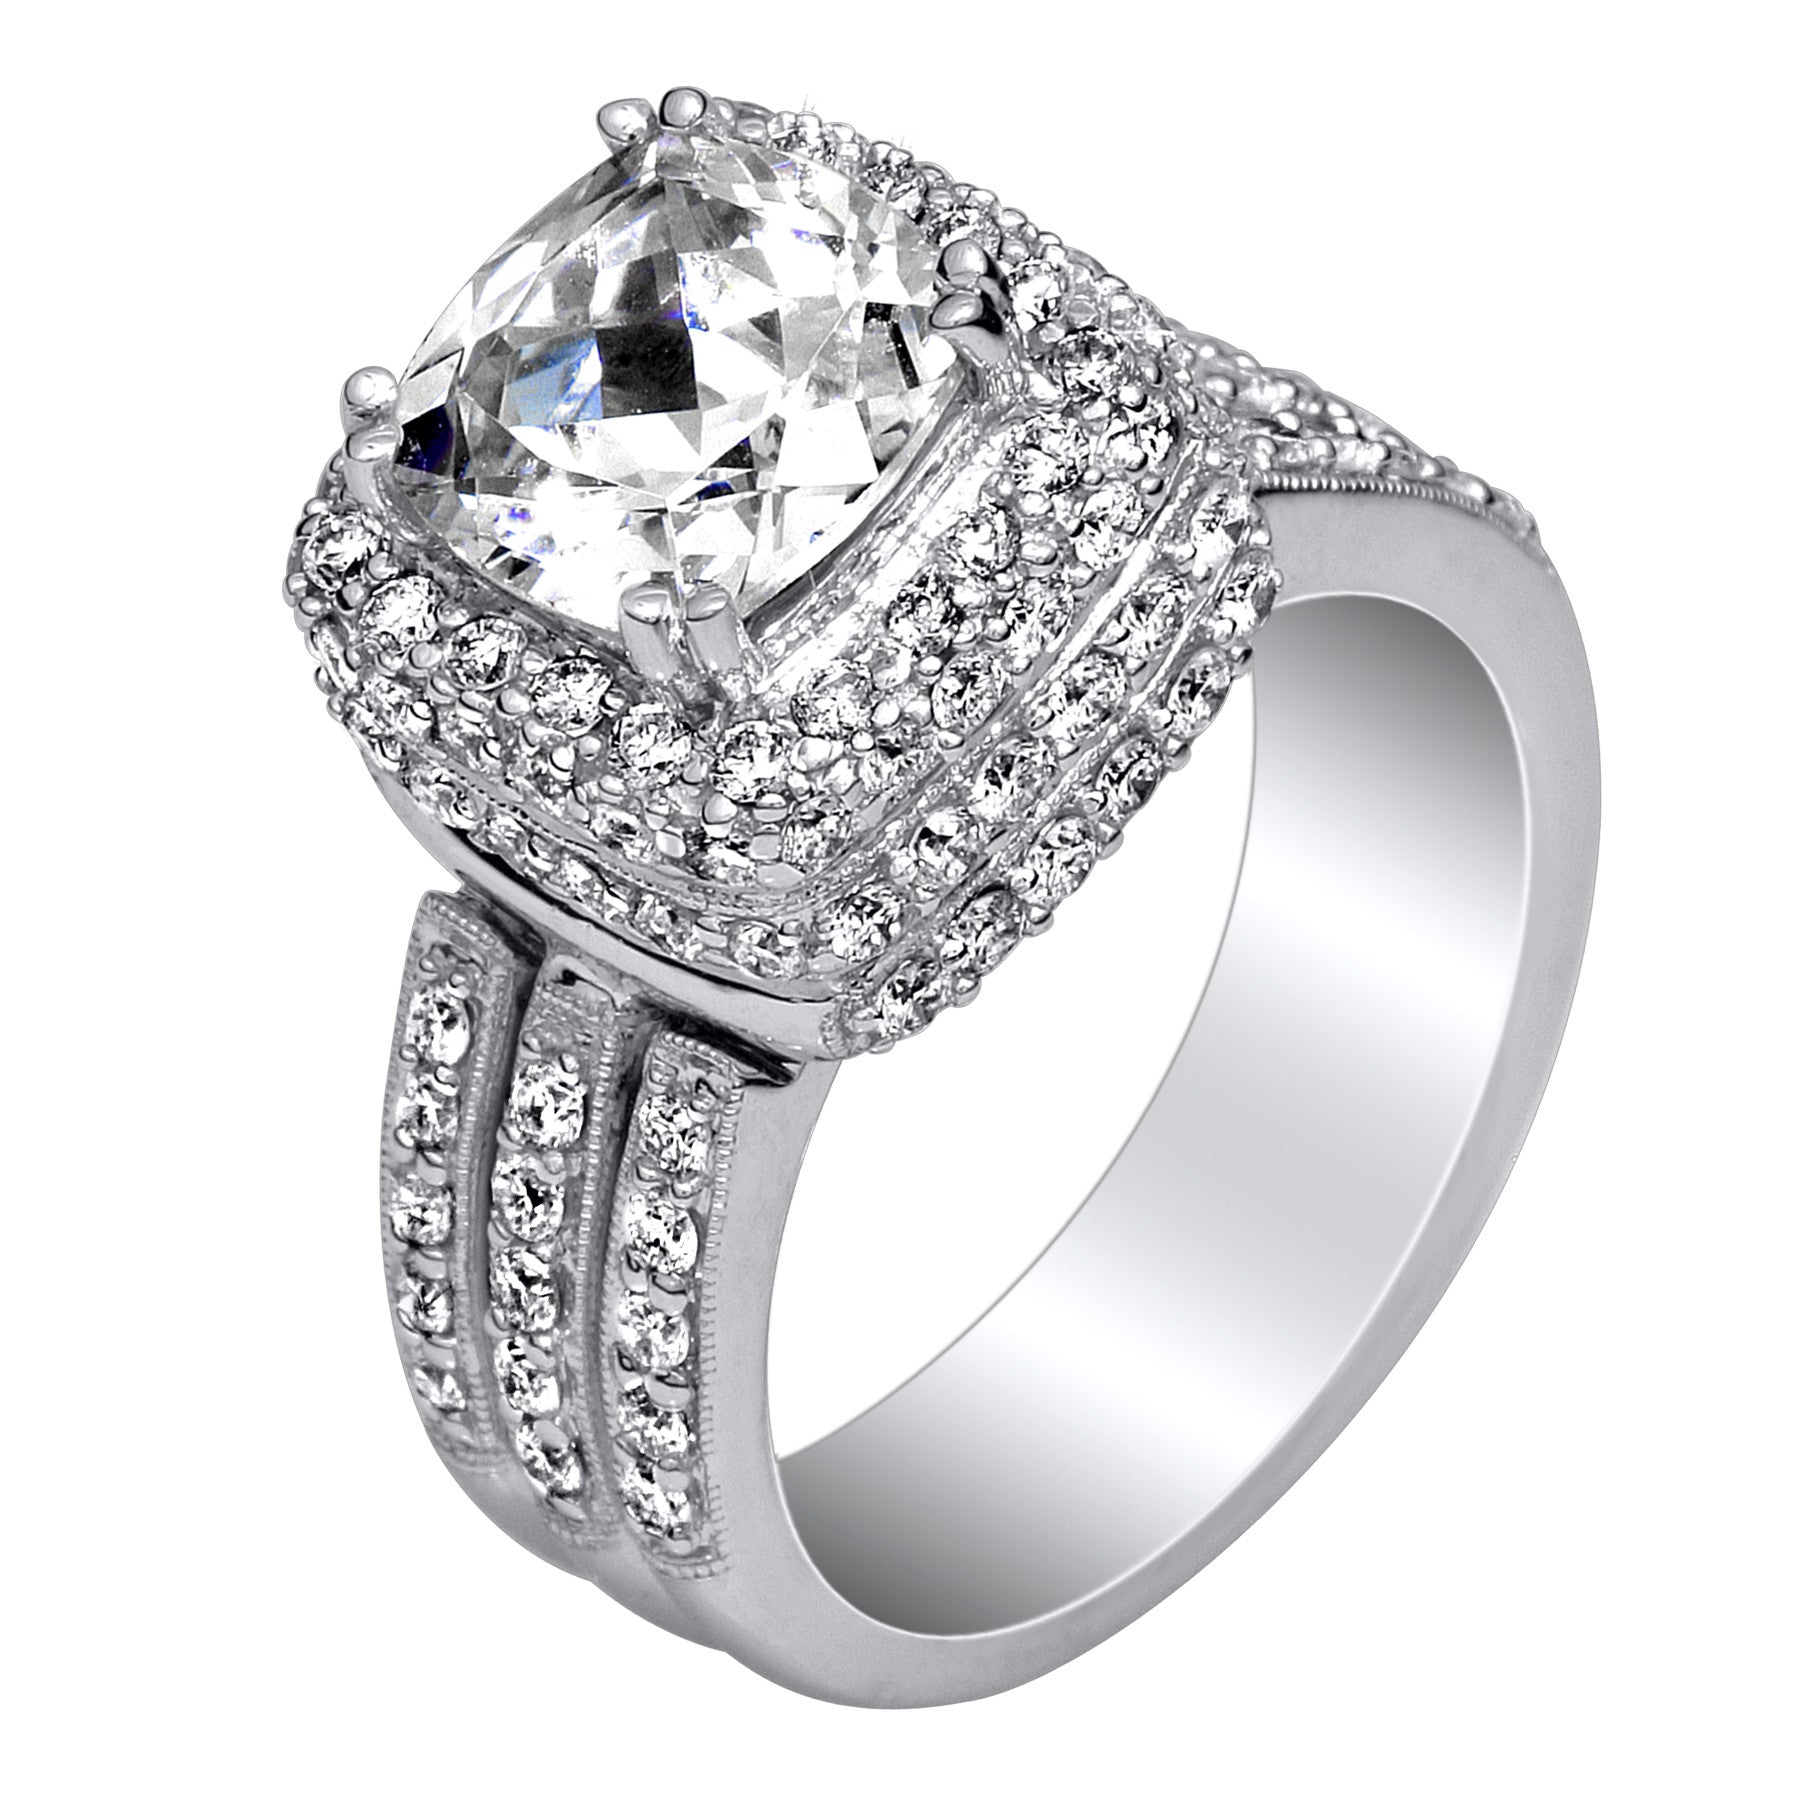 ring g white product of side stone diamonds picture engagement rings gold simon diamond